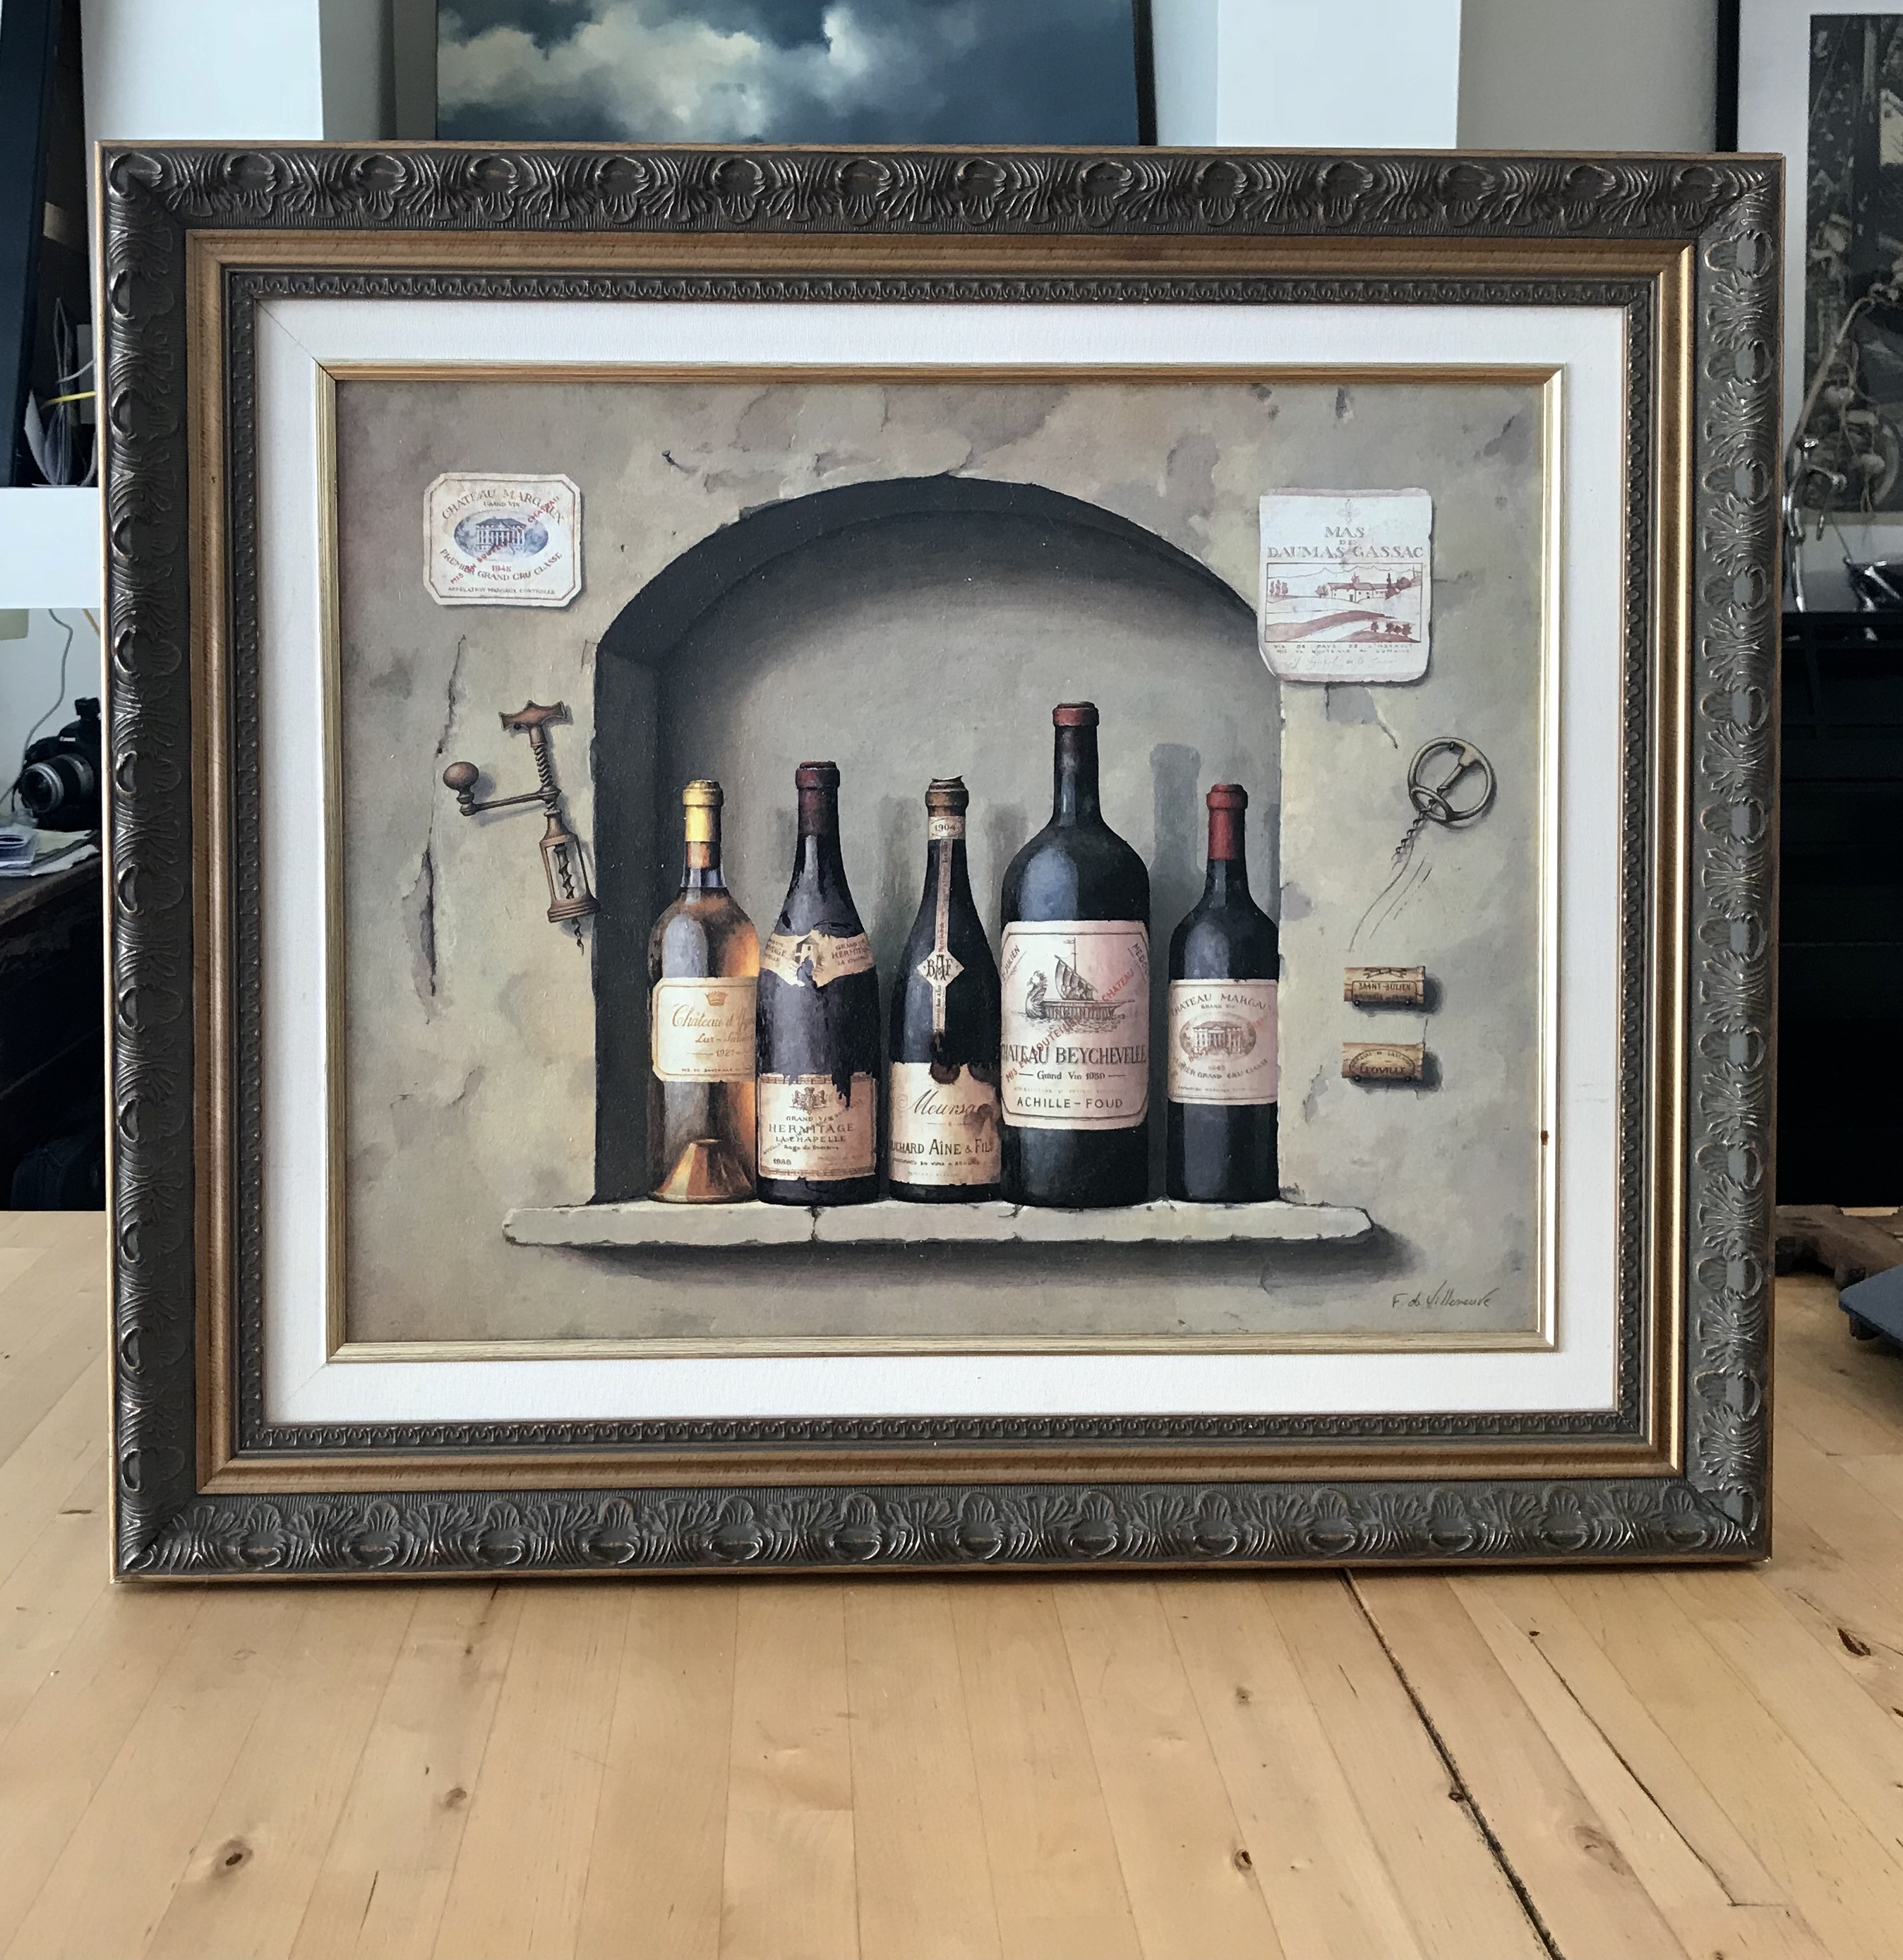 Framed painting of old and great French wine bottles